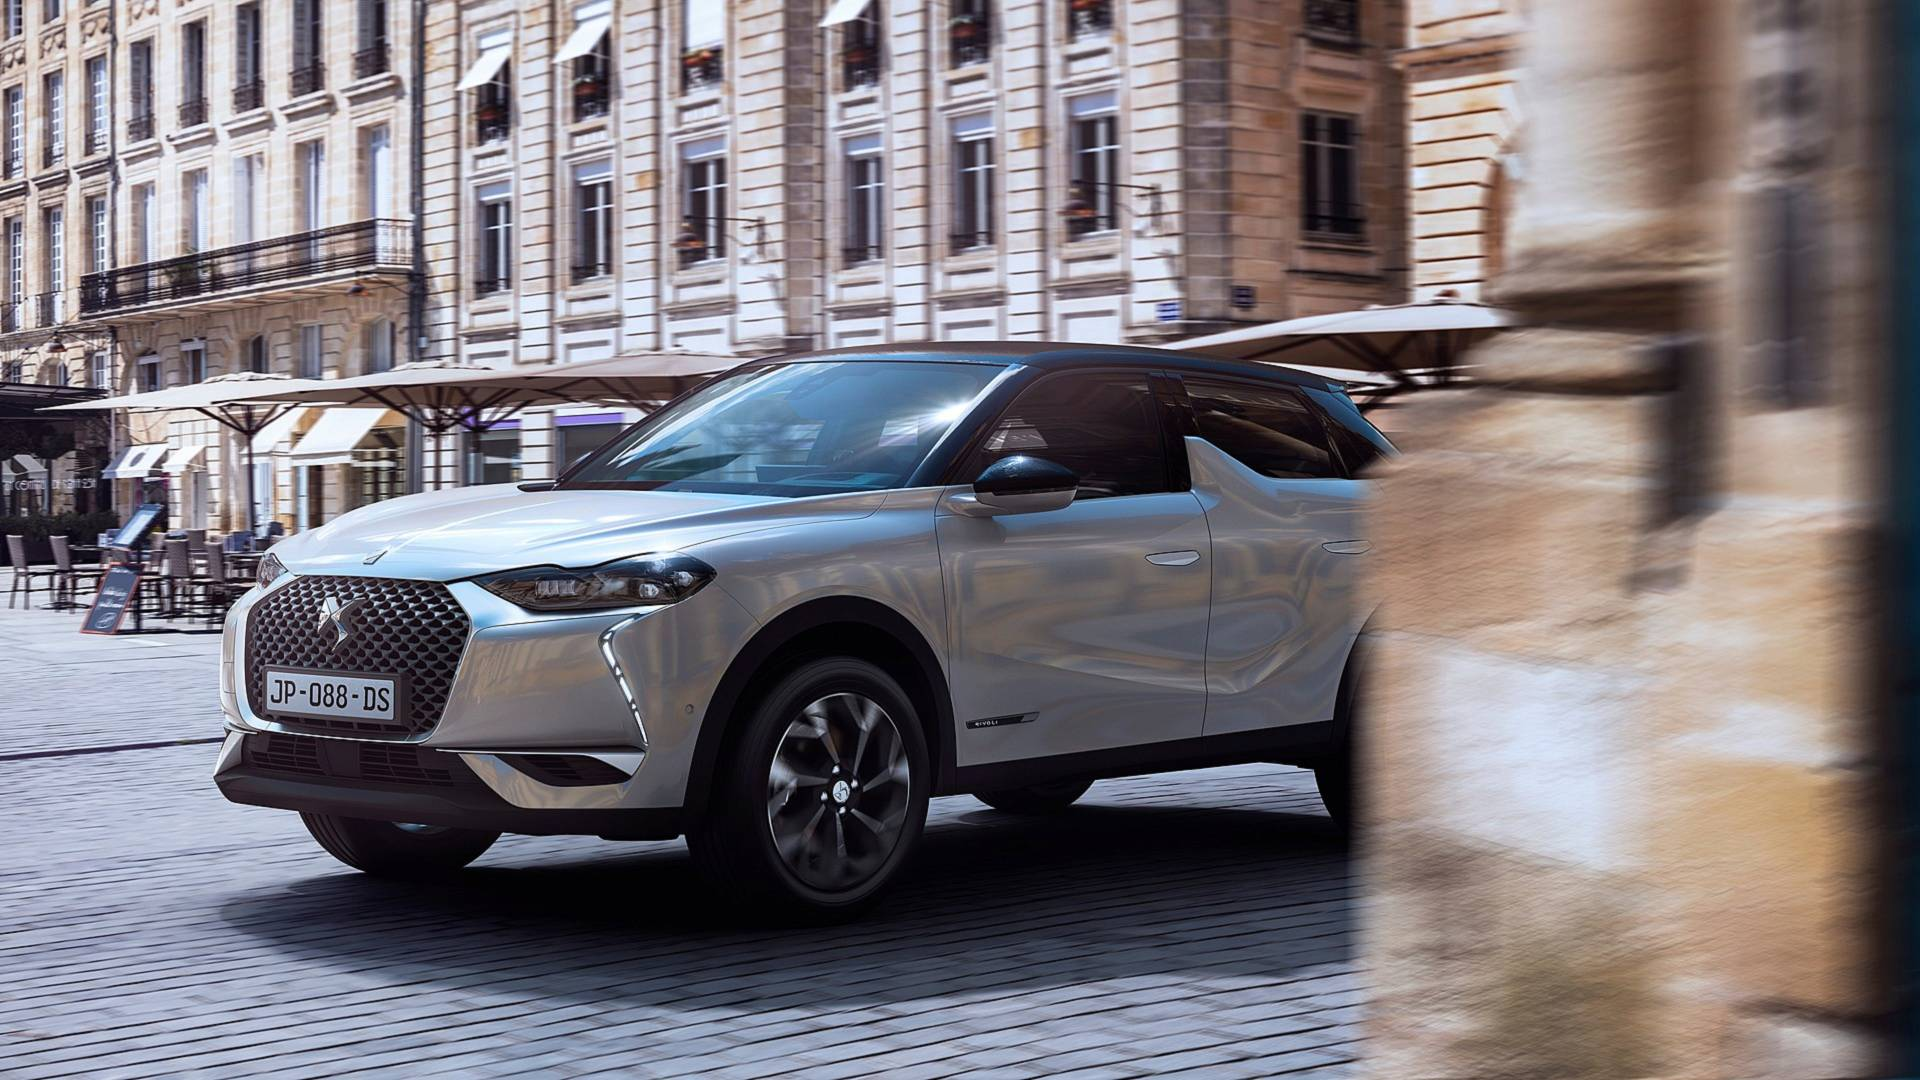 ds-3-crossback-2019 (28)